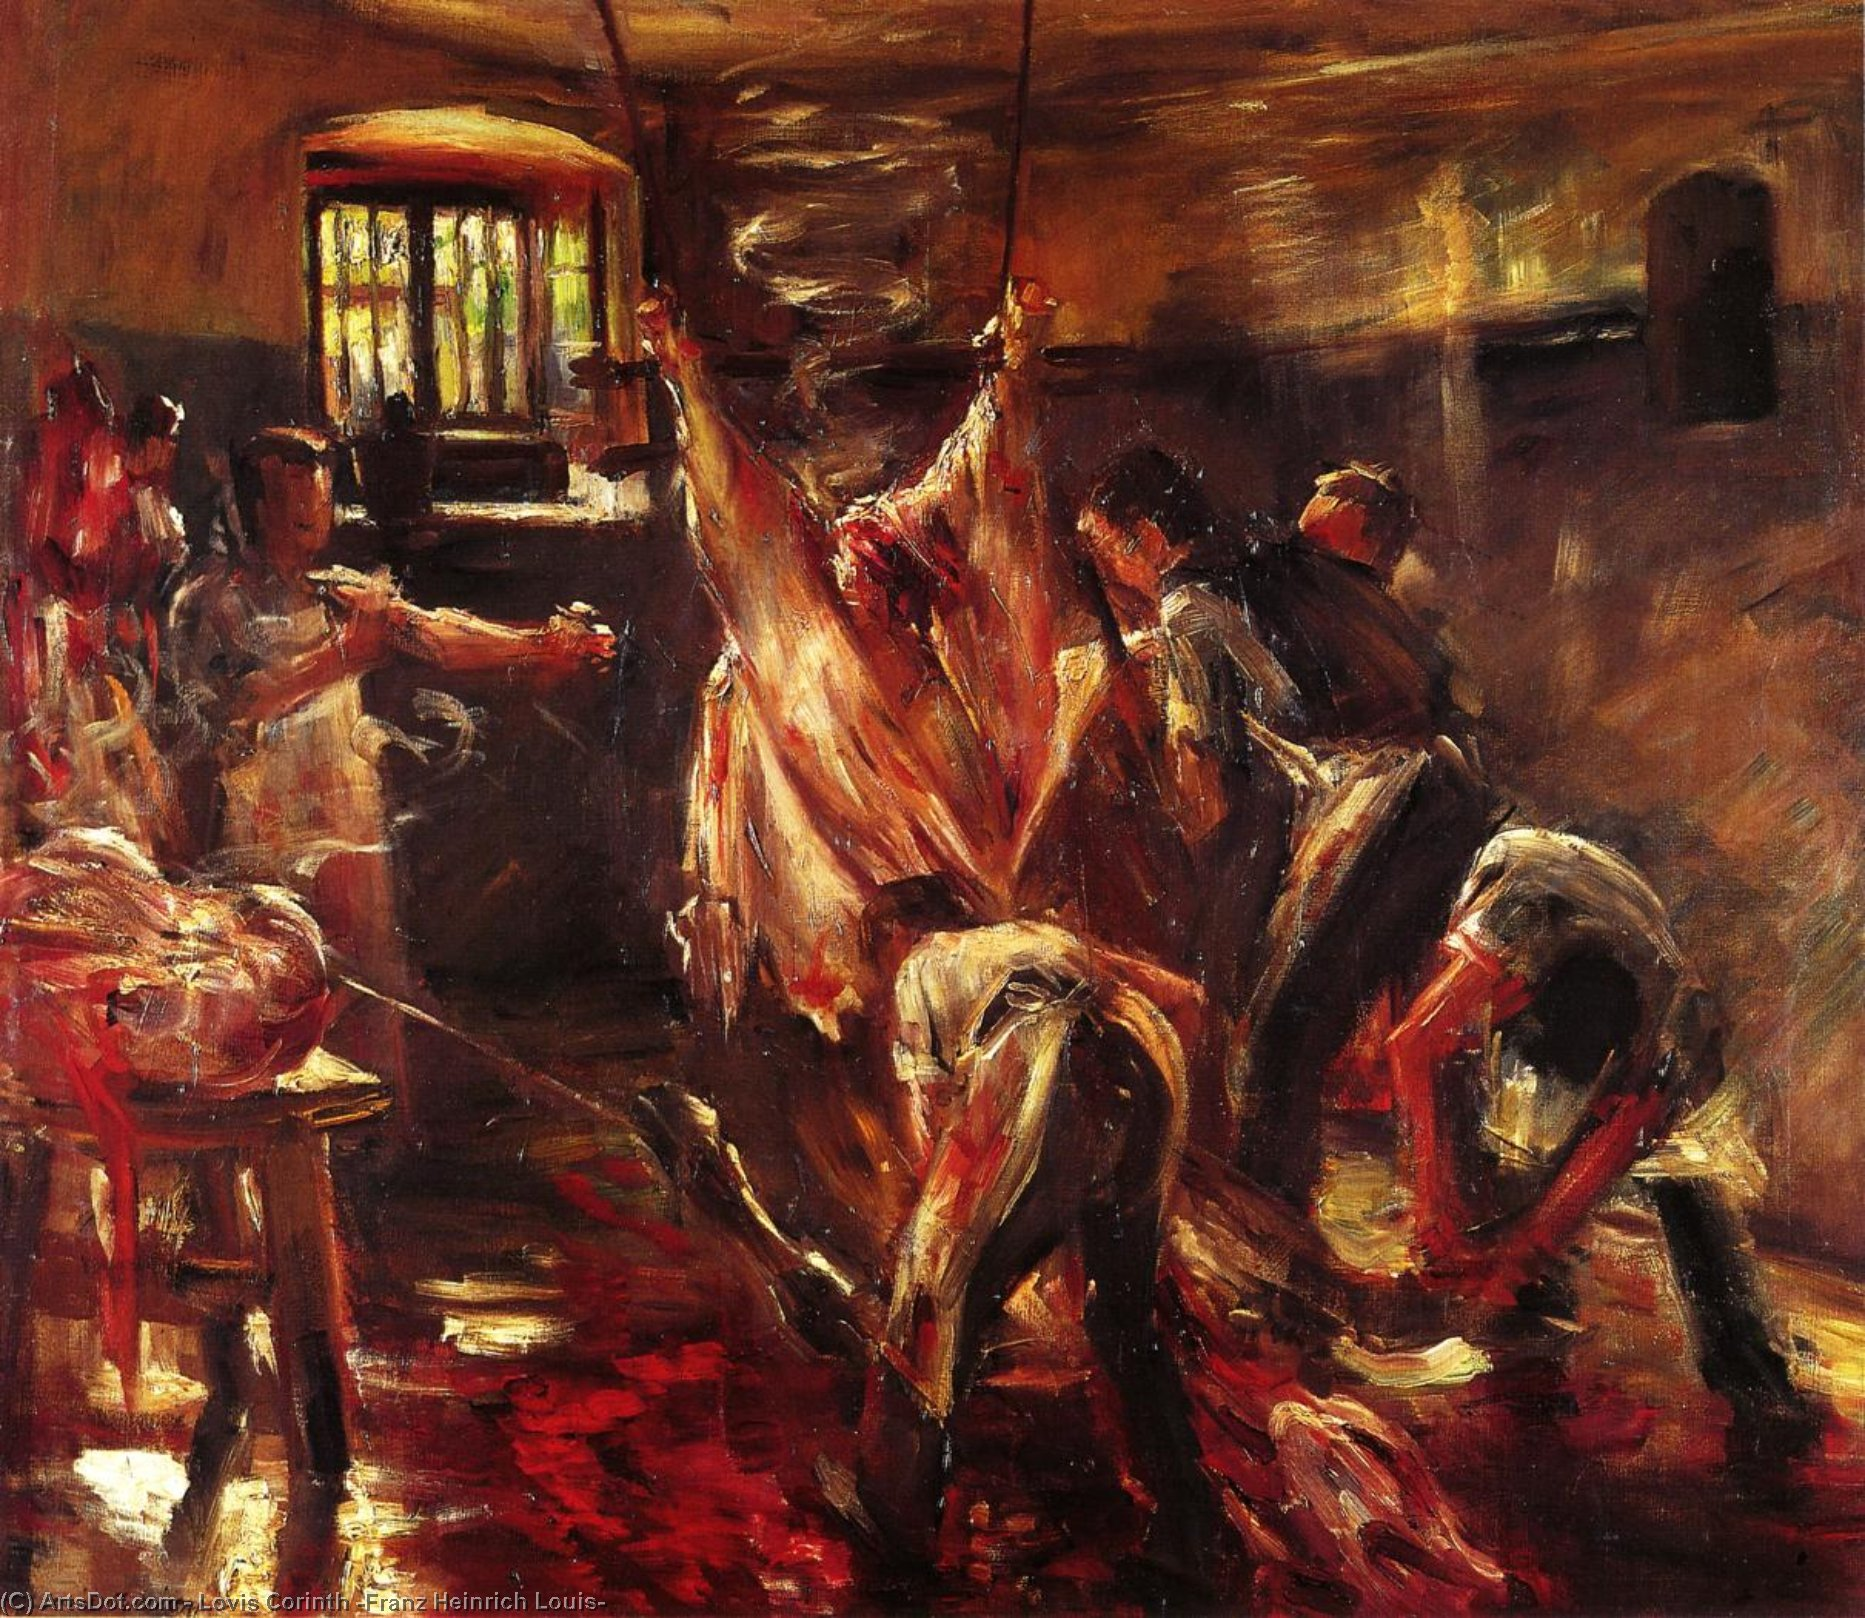 In the Slaughter House, Oil On Canvas by Lovis Corinth (Franz Heinrich Louis) (1858-1925, Netherlands)